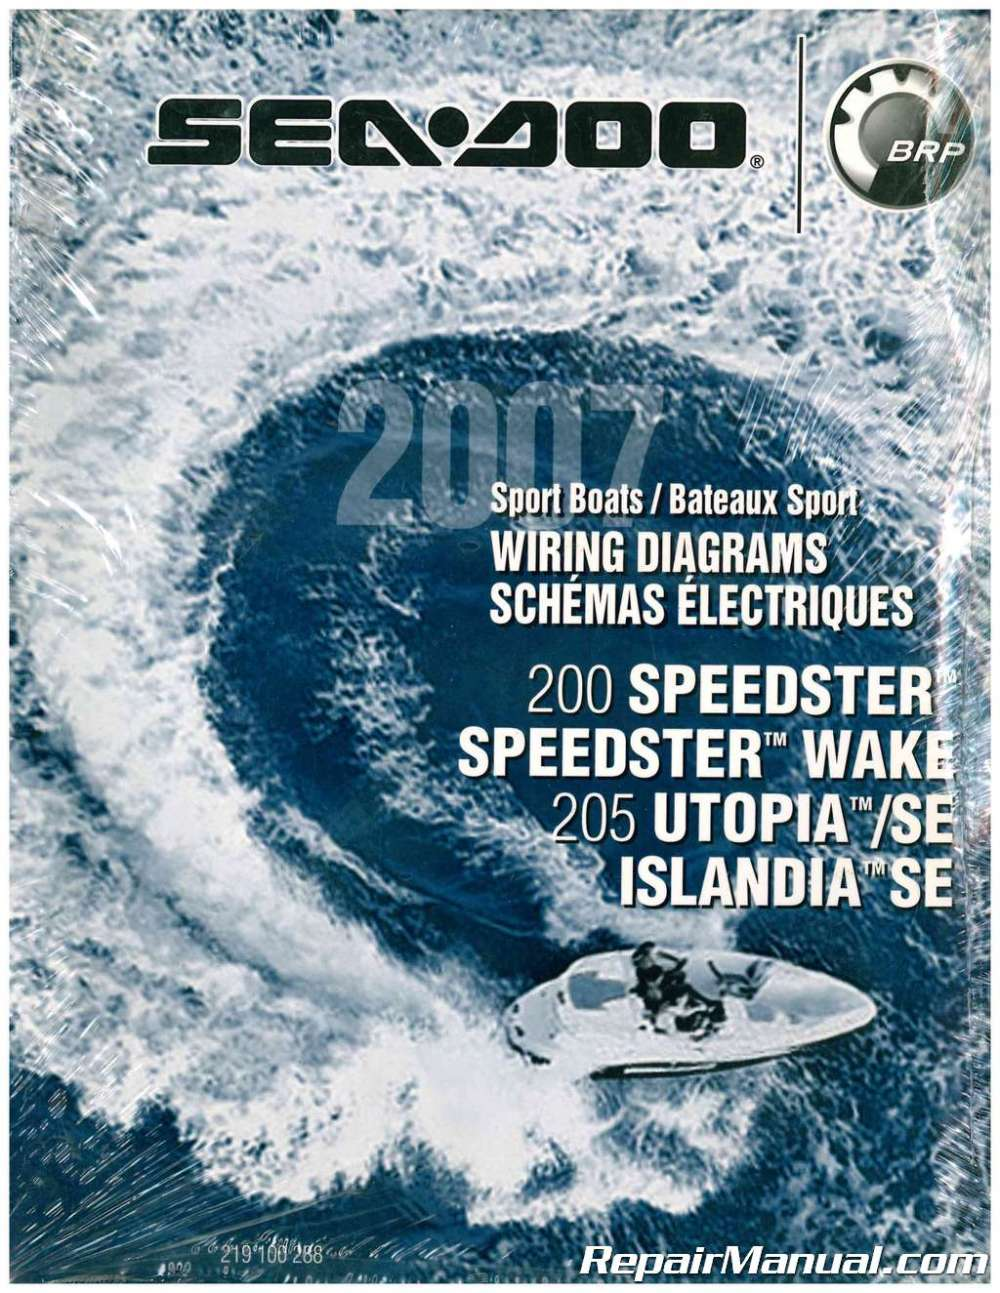 medium resolution of 2007 sea doo boat wiring diagram 200 speedster speedster wake 205 utopia se islandia se jpg